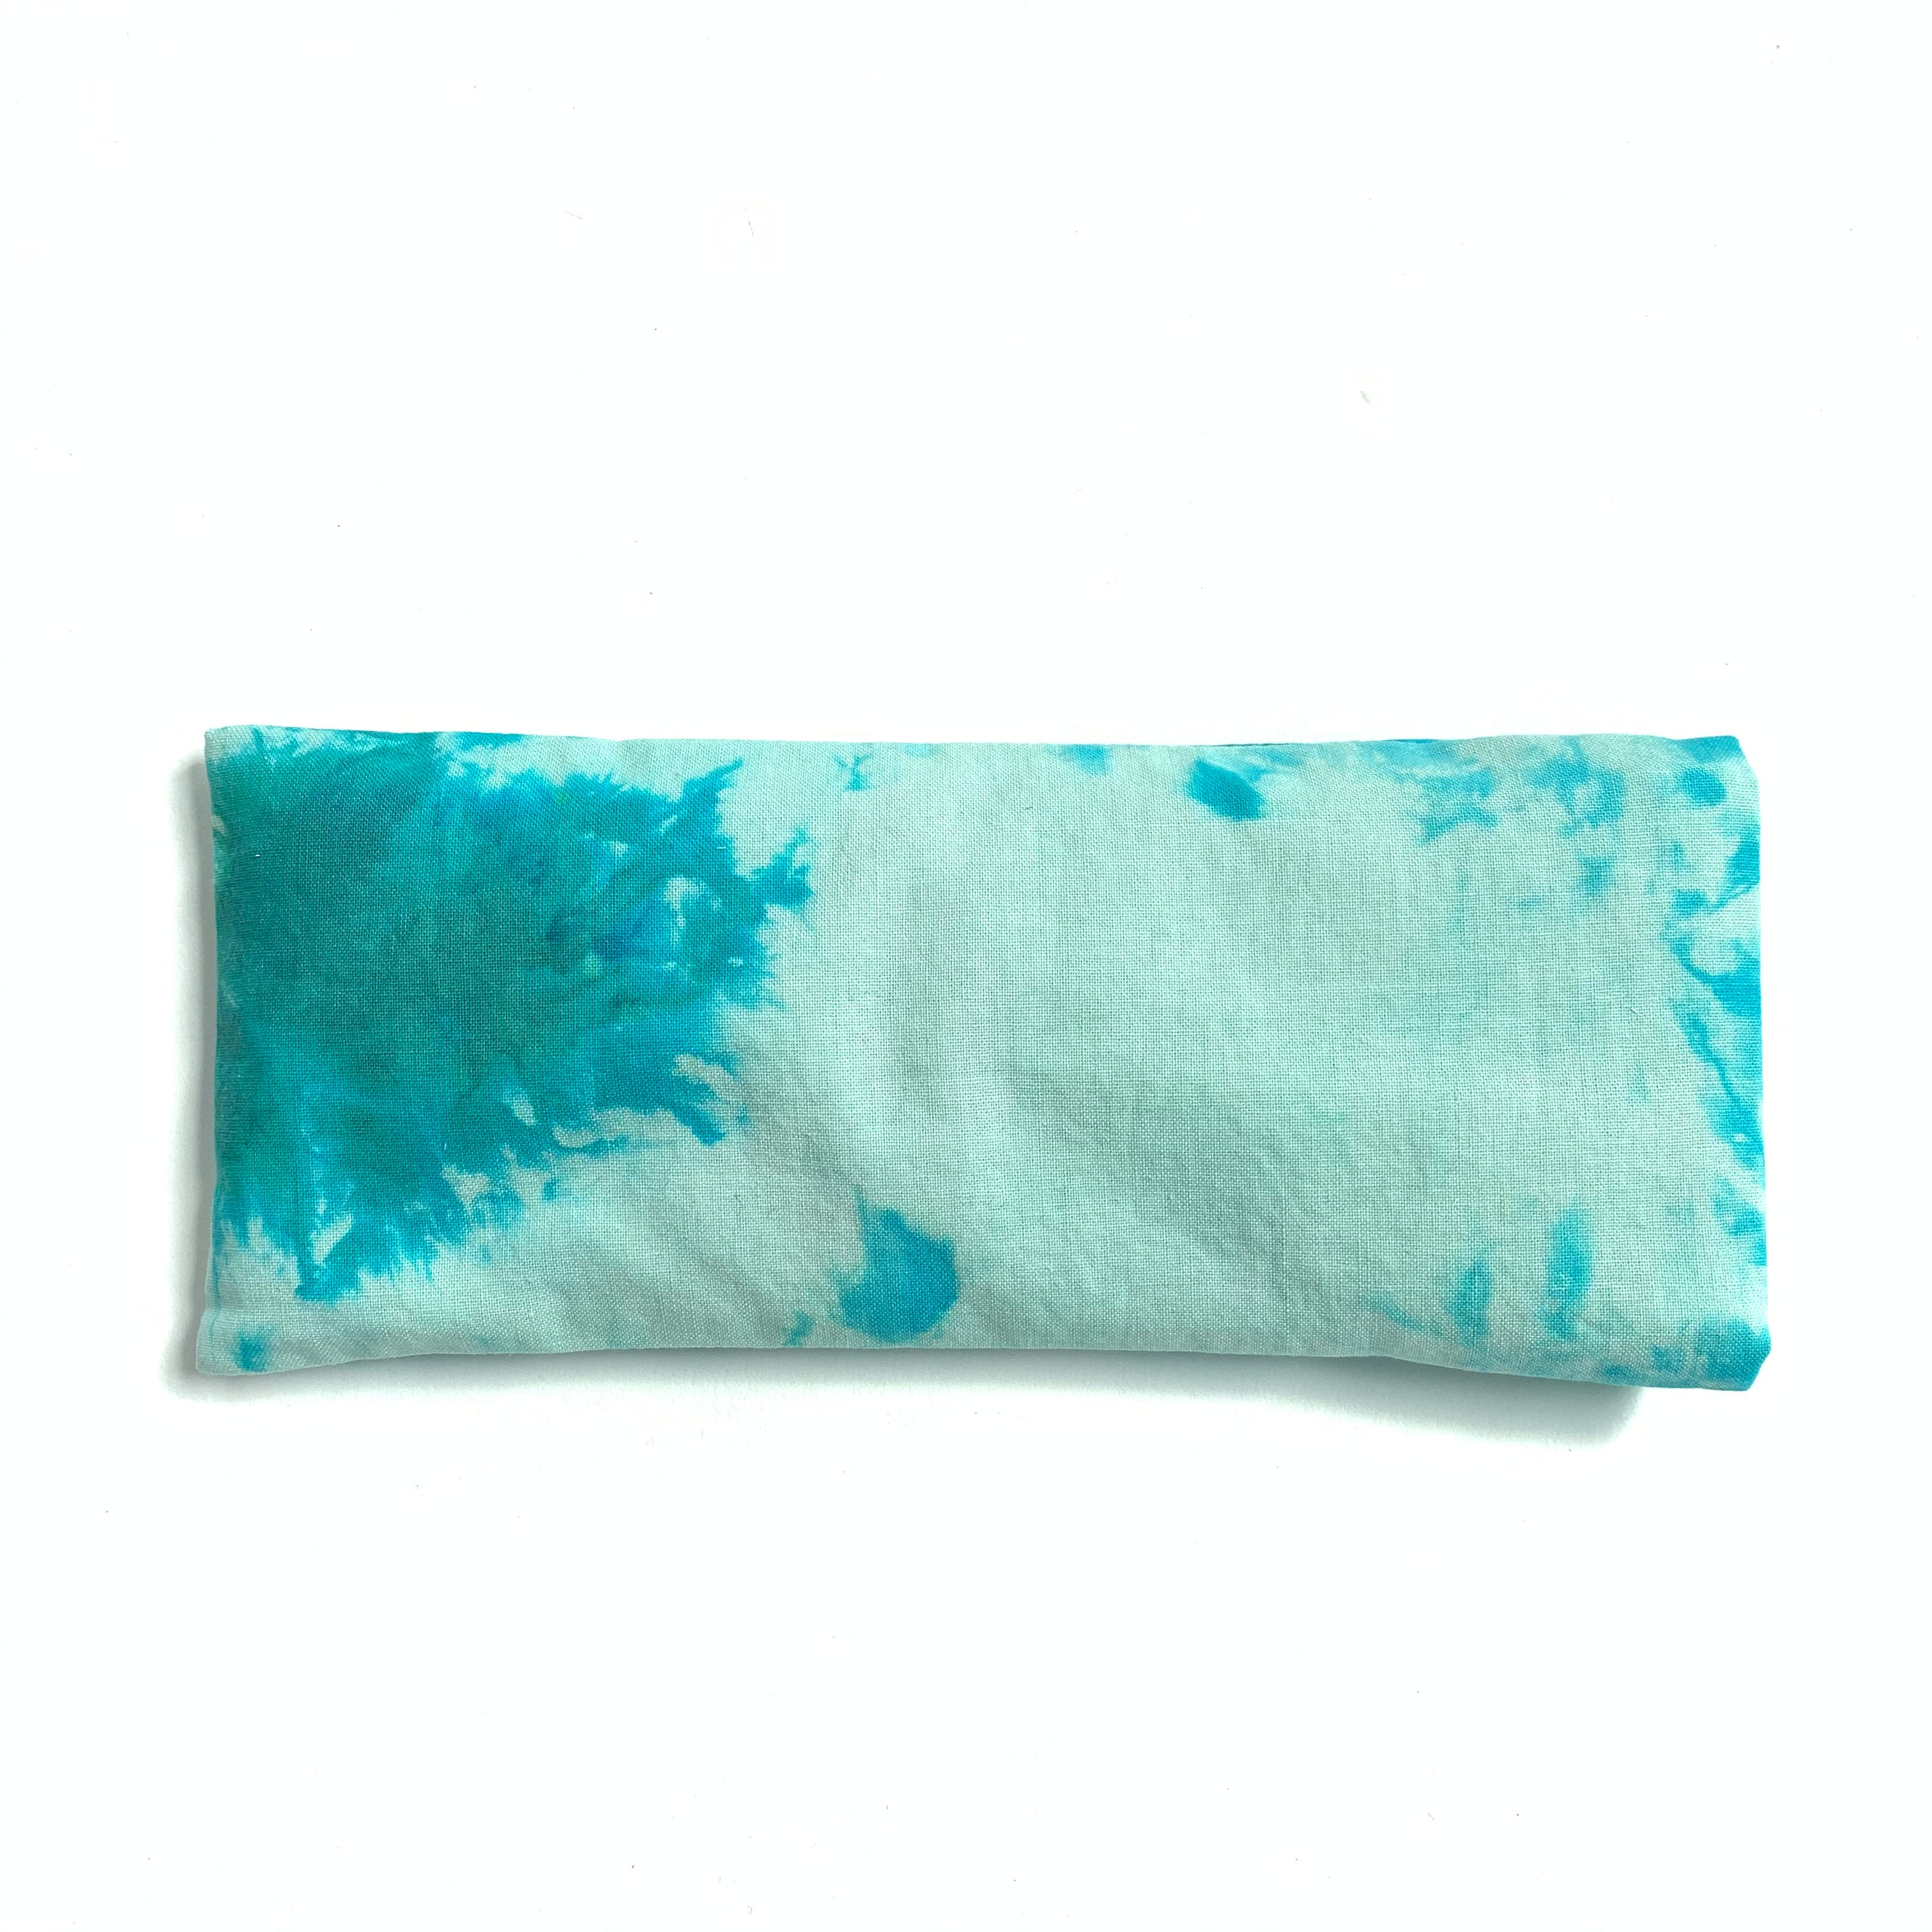 Lavender eye pillow with turquoise hand dyed marble design, made in Toronto, Ontario, Canada.